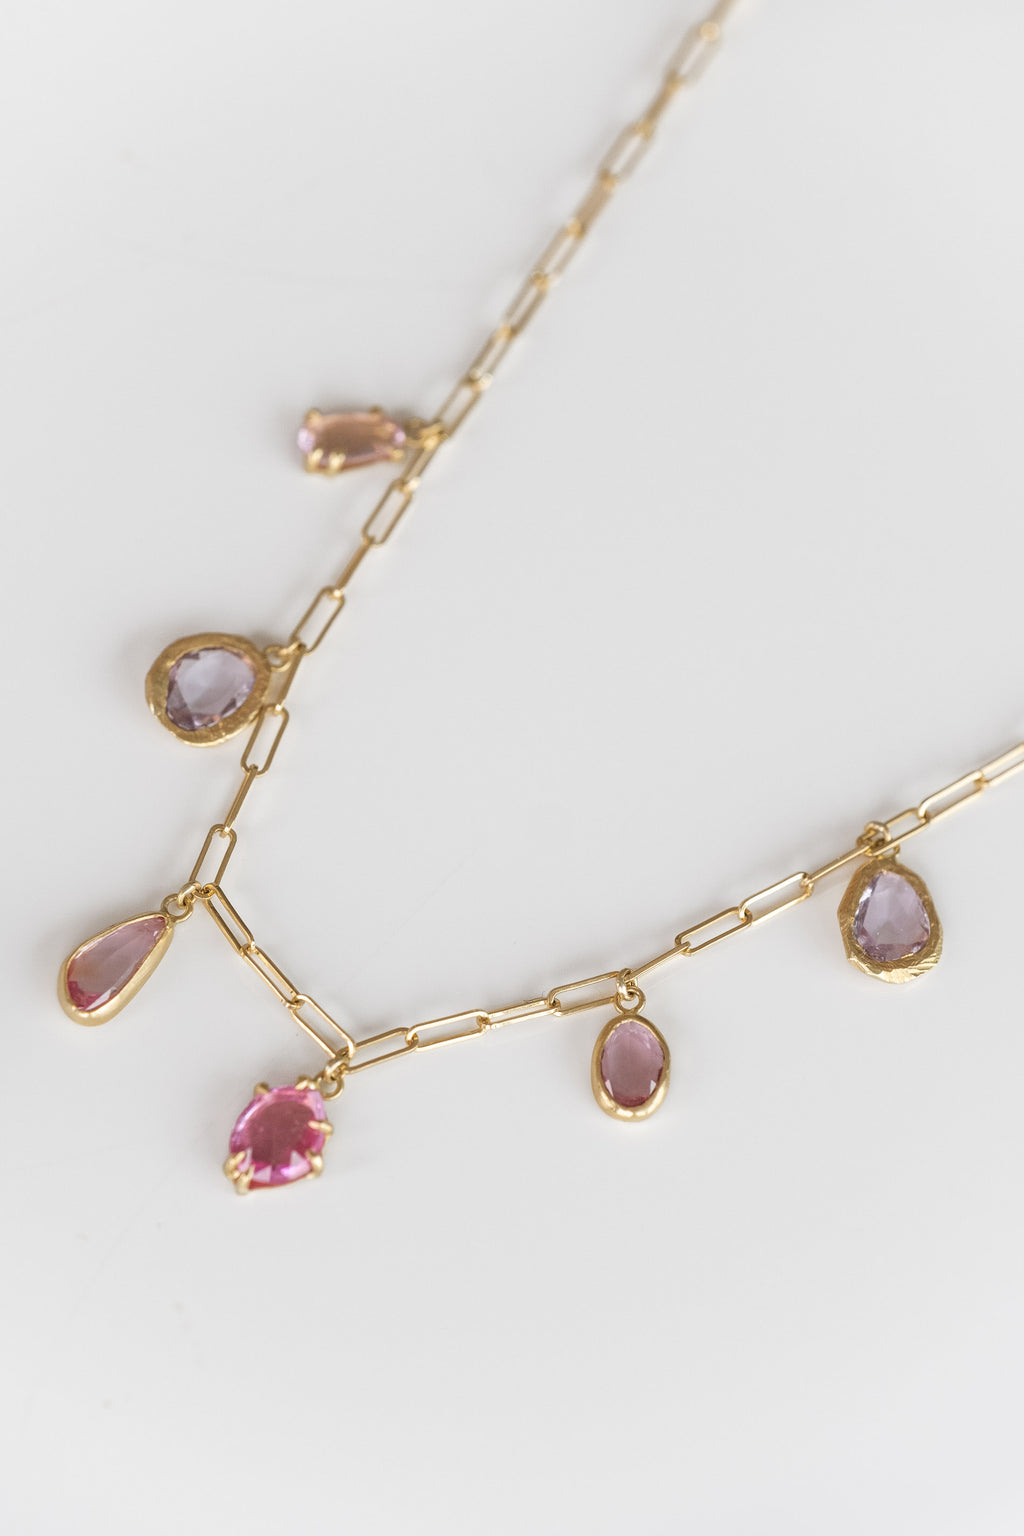 18K PINK SAPPHIRE OMBRE NECKLACE